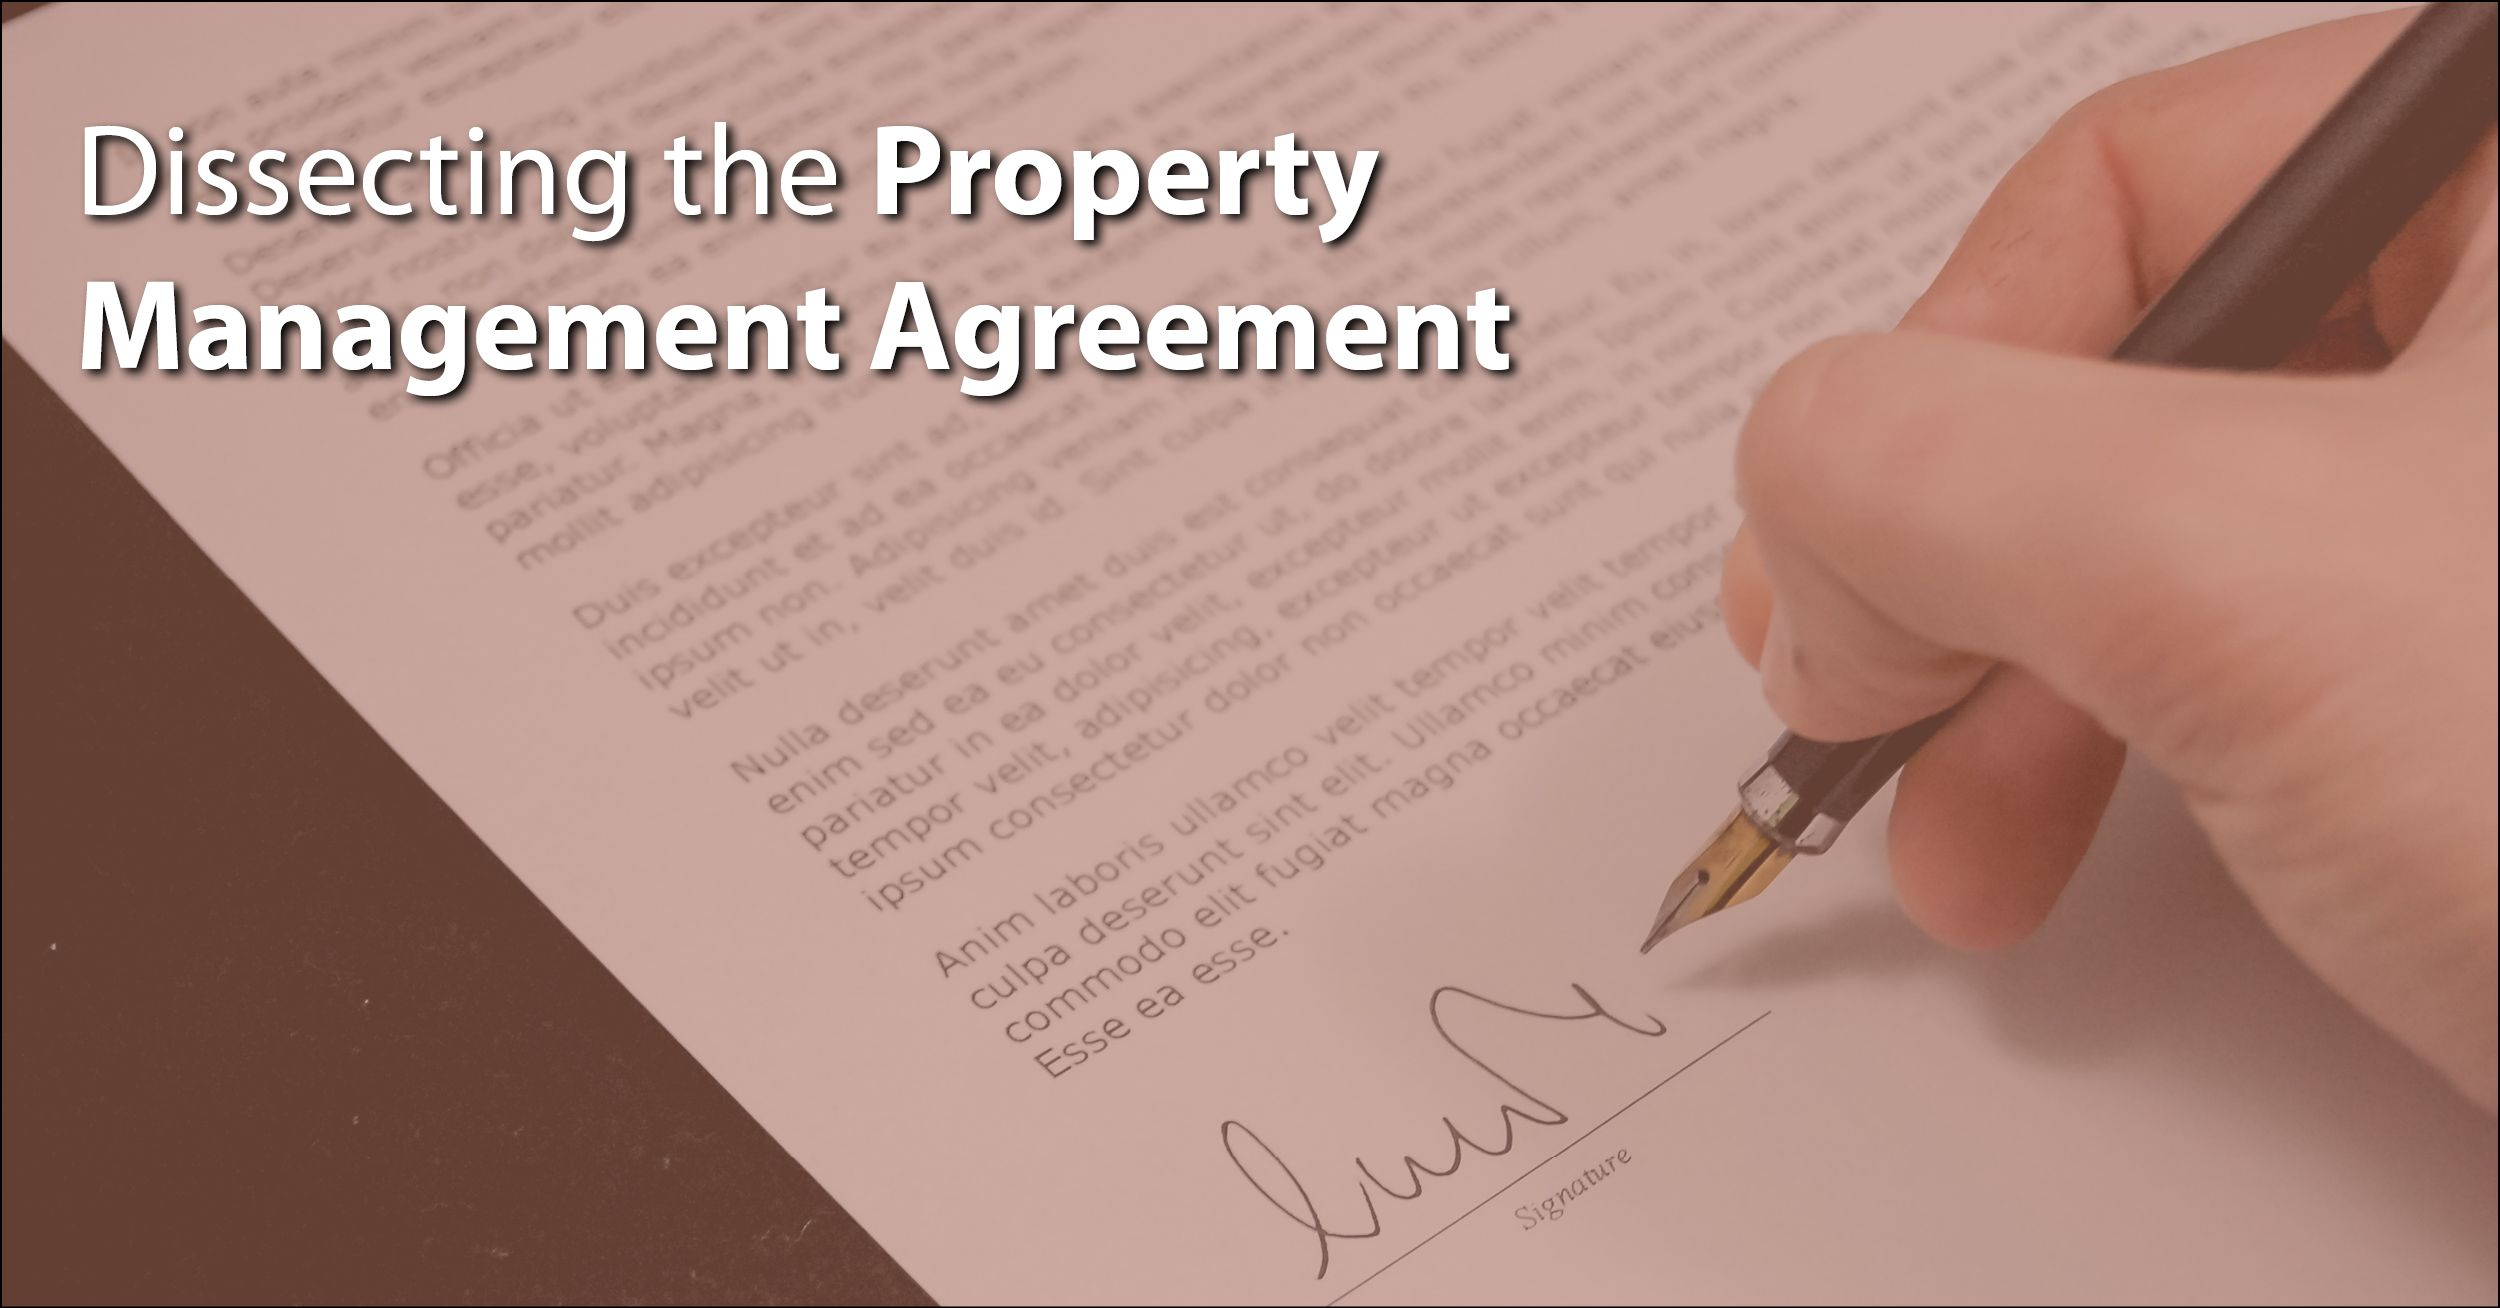 Dissecting The Property Management Agreement